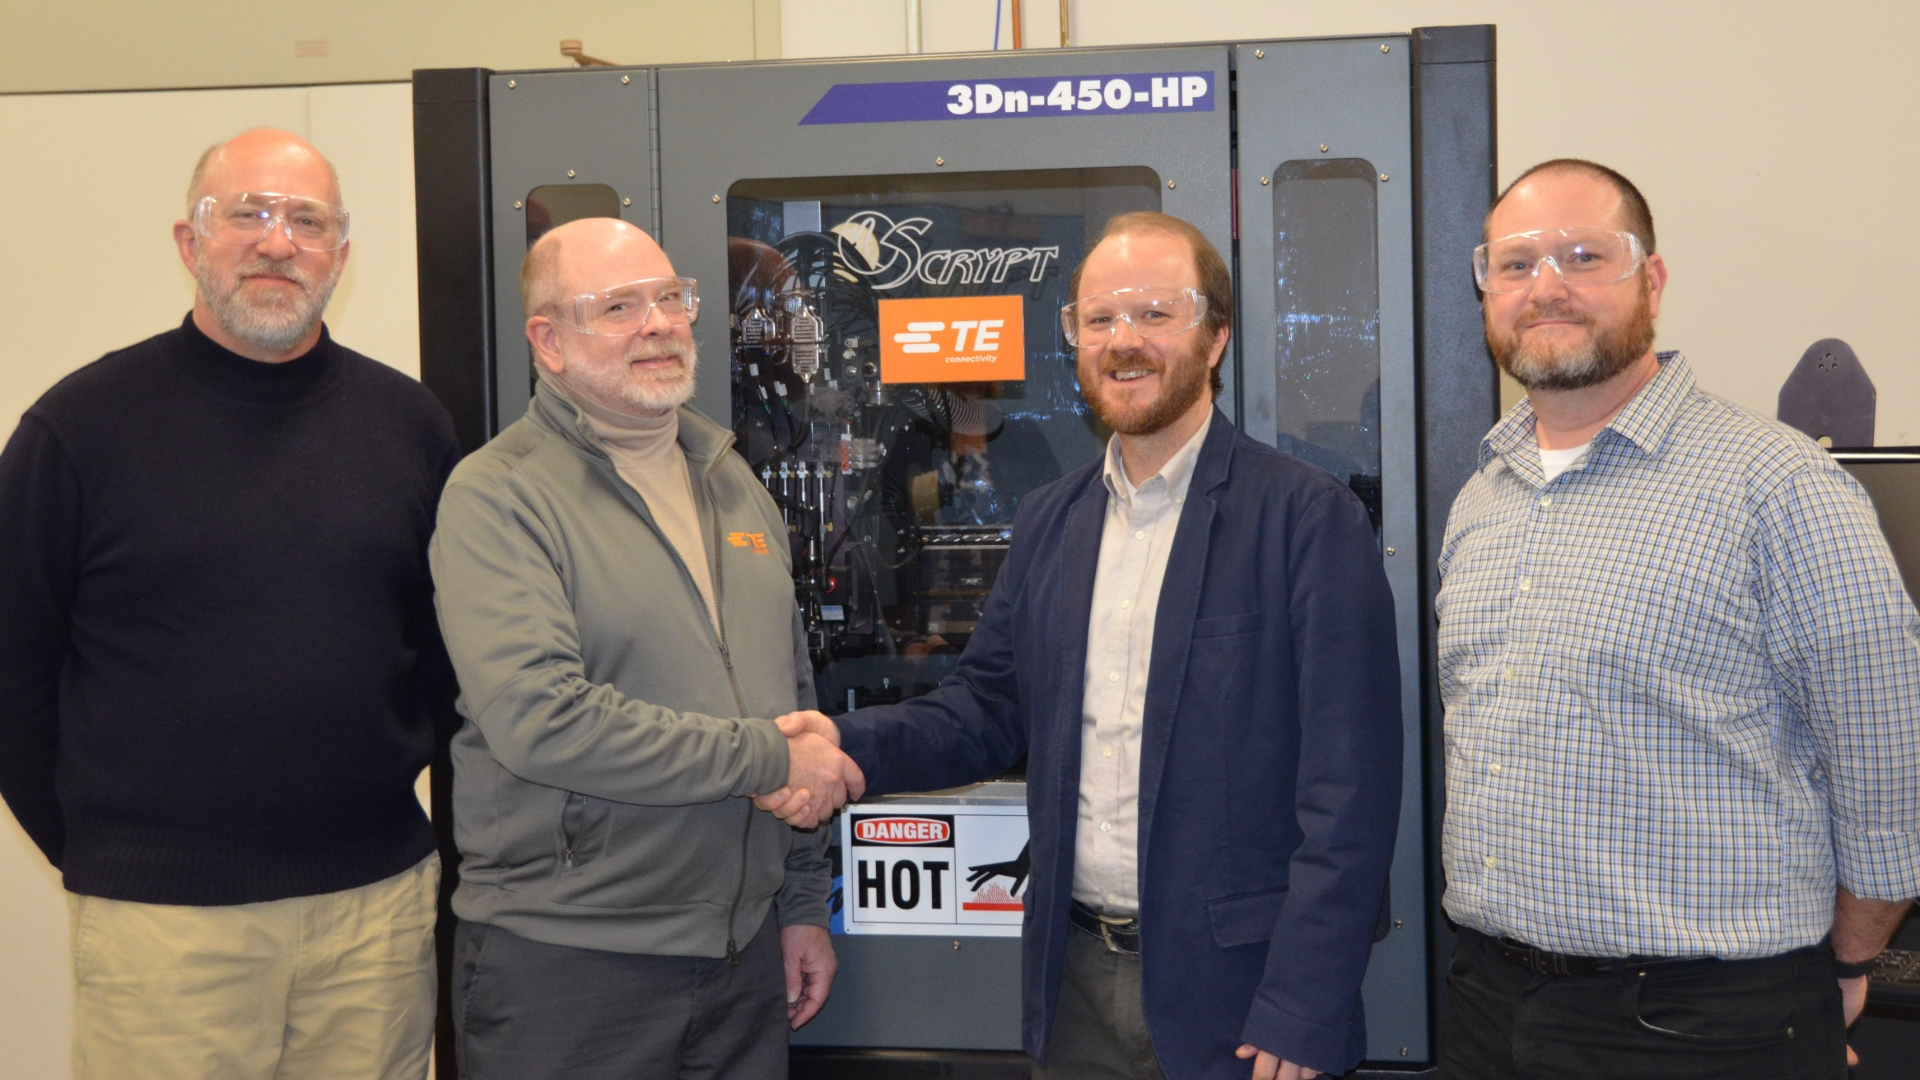 TE Connectivity donating the nScrypt 3Dn-450-HP 3D printer to Penn State. Photo via TE Connectivity.